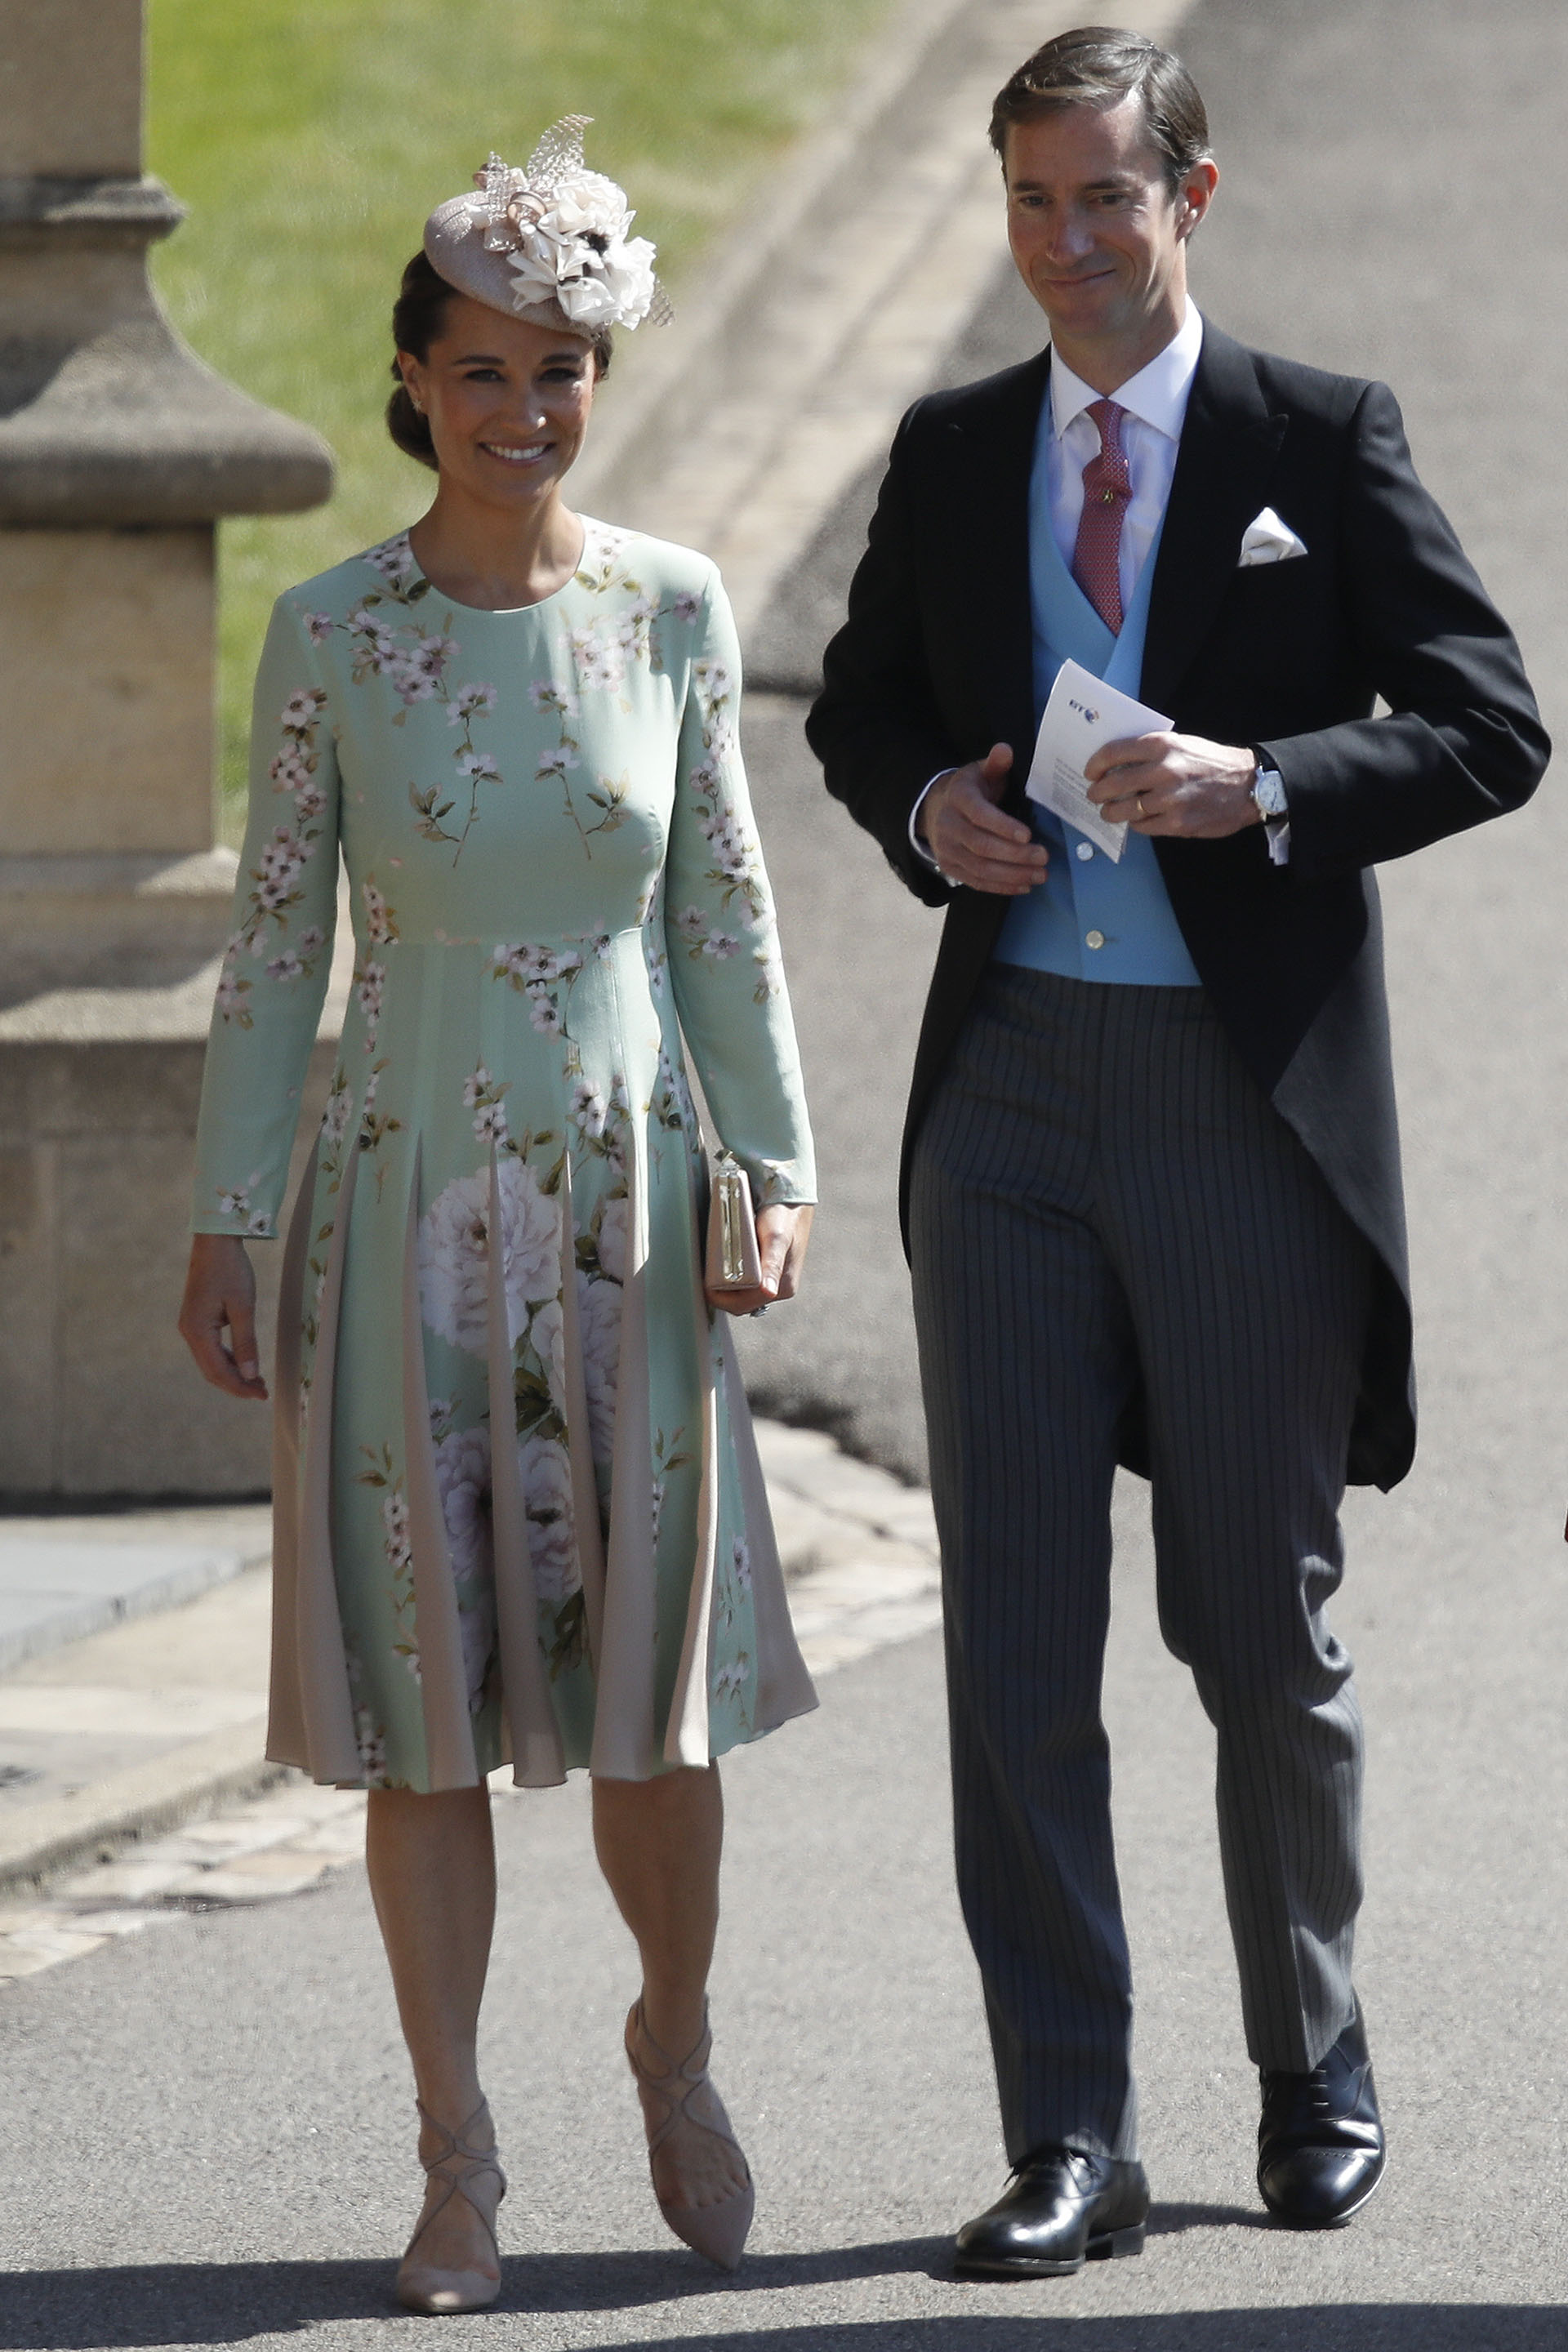 Pippa Middleton, embarazada, y su esposo husband James